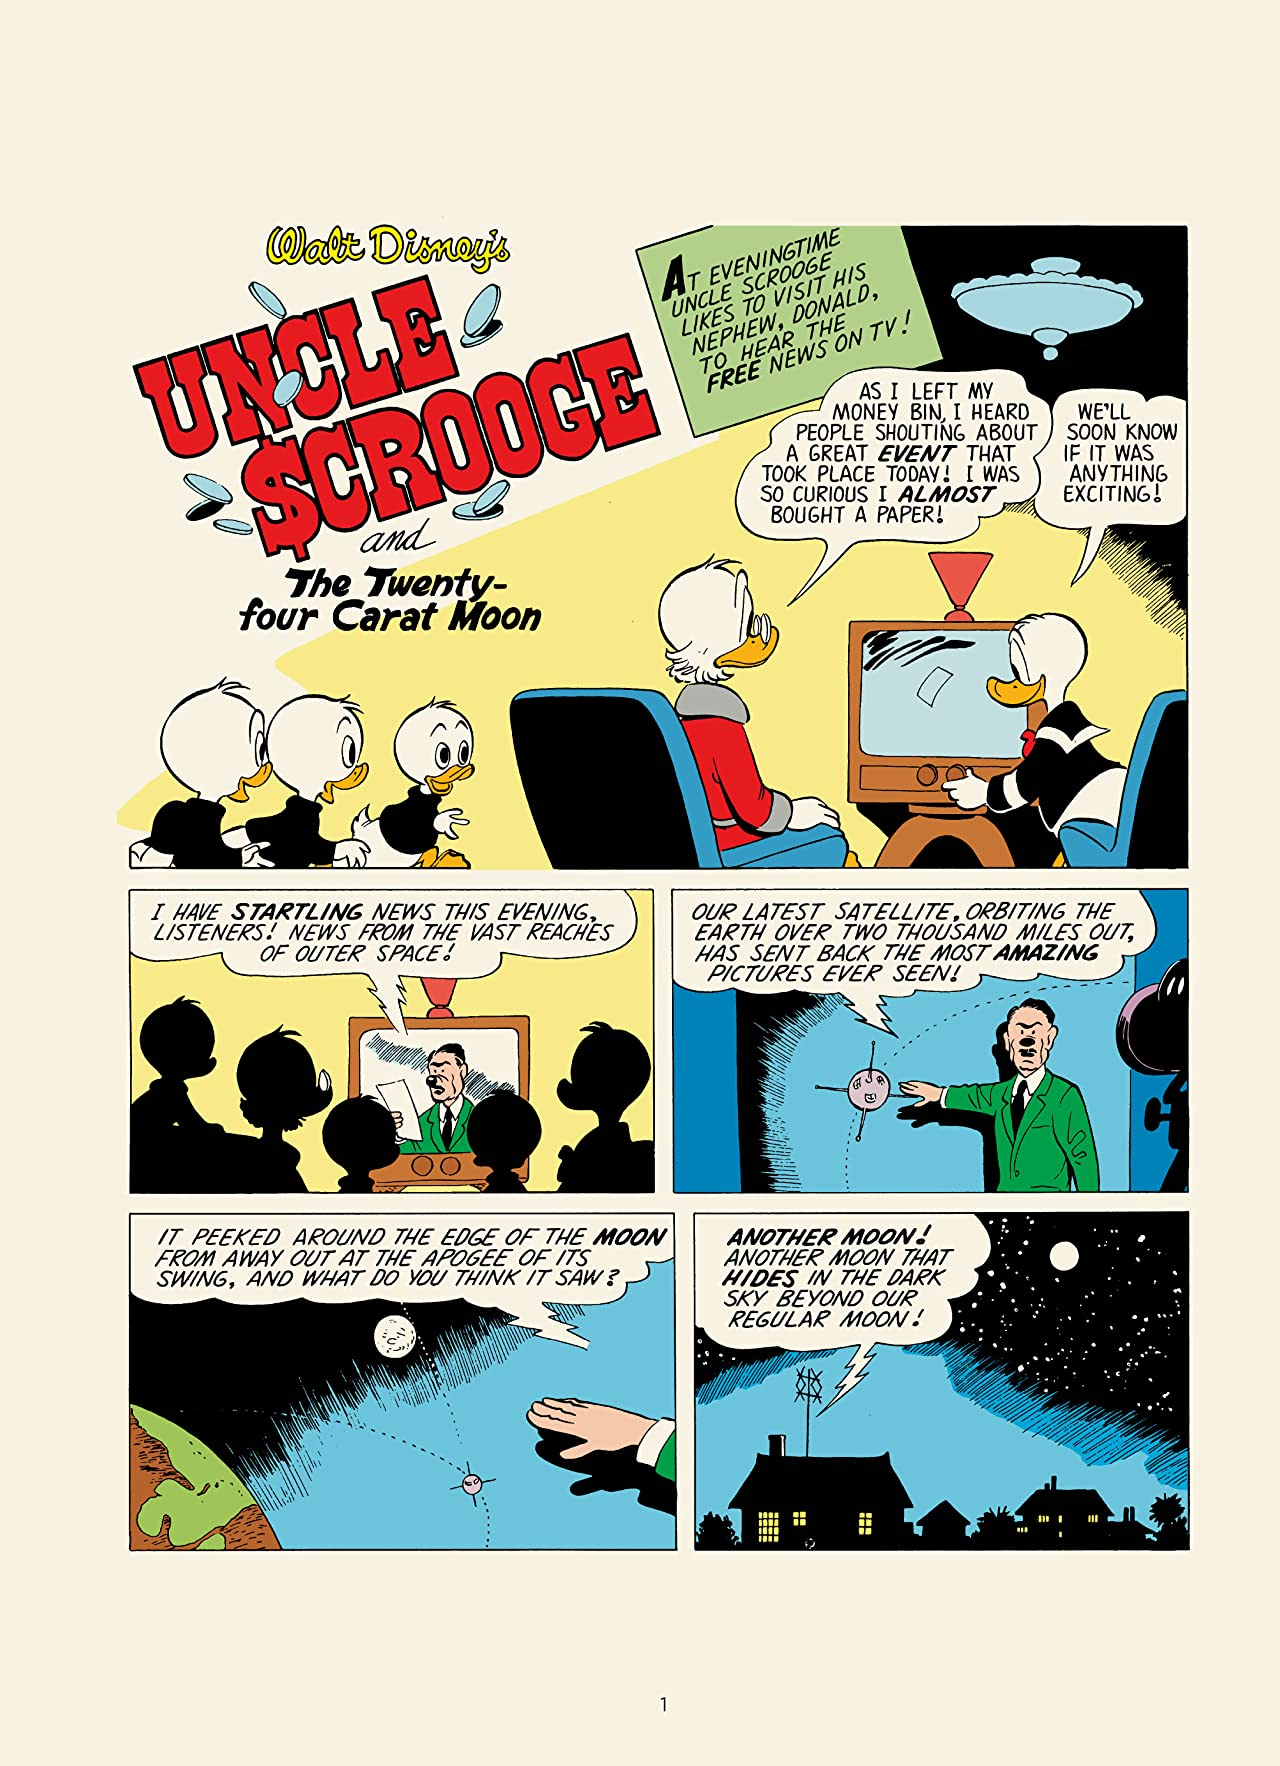 Walt Disney's Uncle Scrooge Vol. 22: The Twenty-Four Carat Moon